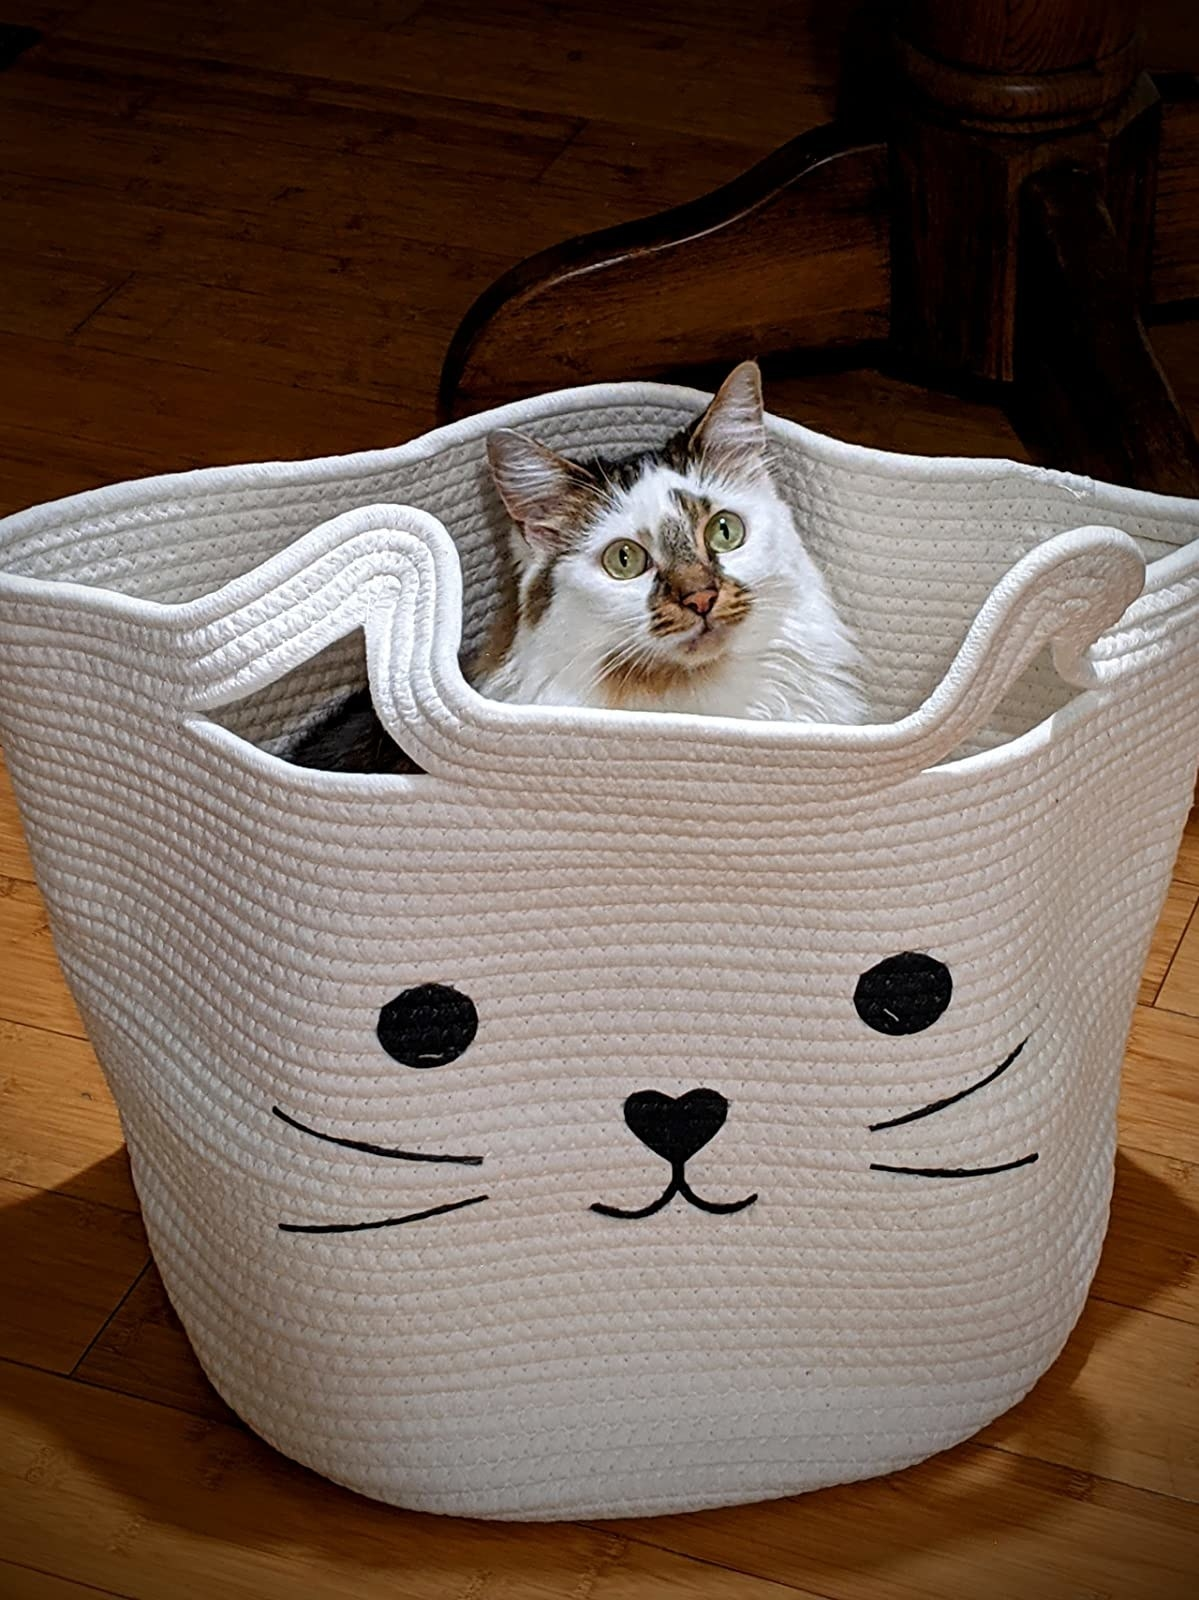 reviewer image of the white cat basket with a white and yellow cat sitting inside